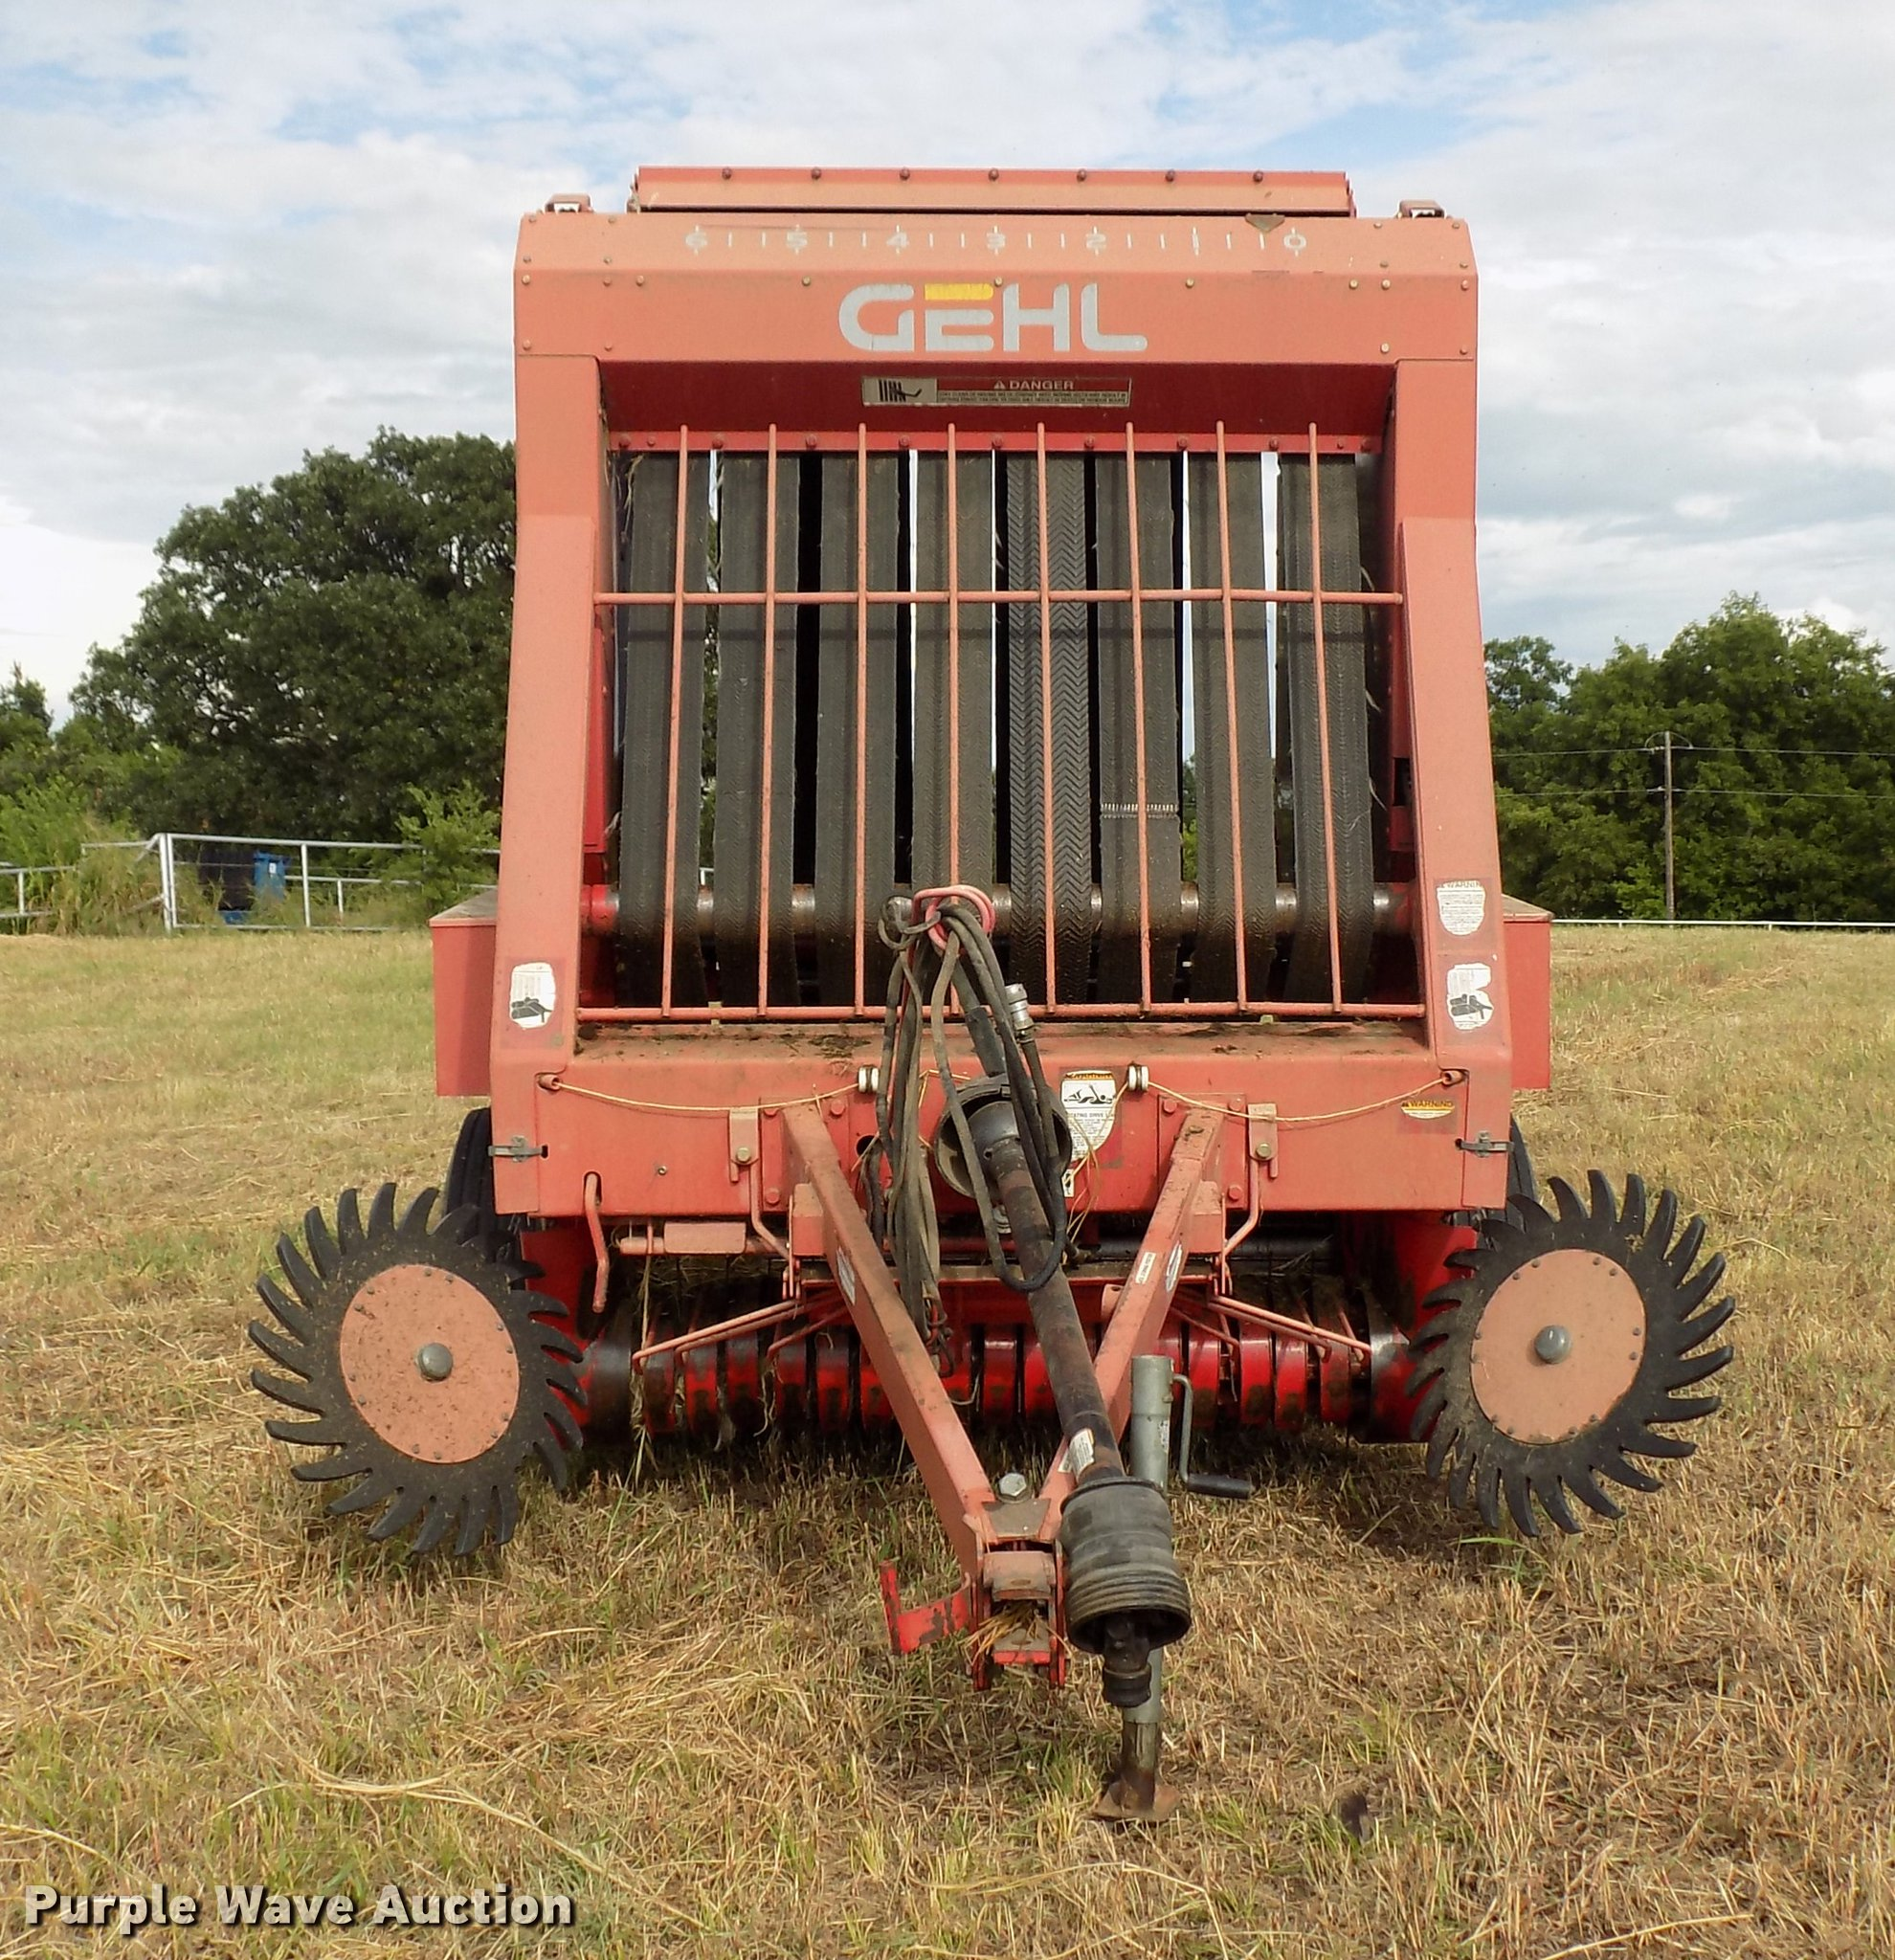 ... Gehl 1875 round baler Full size in new window ...